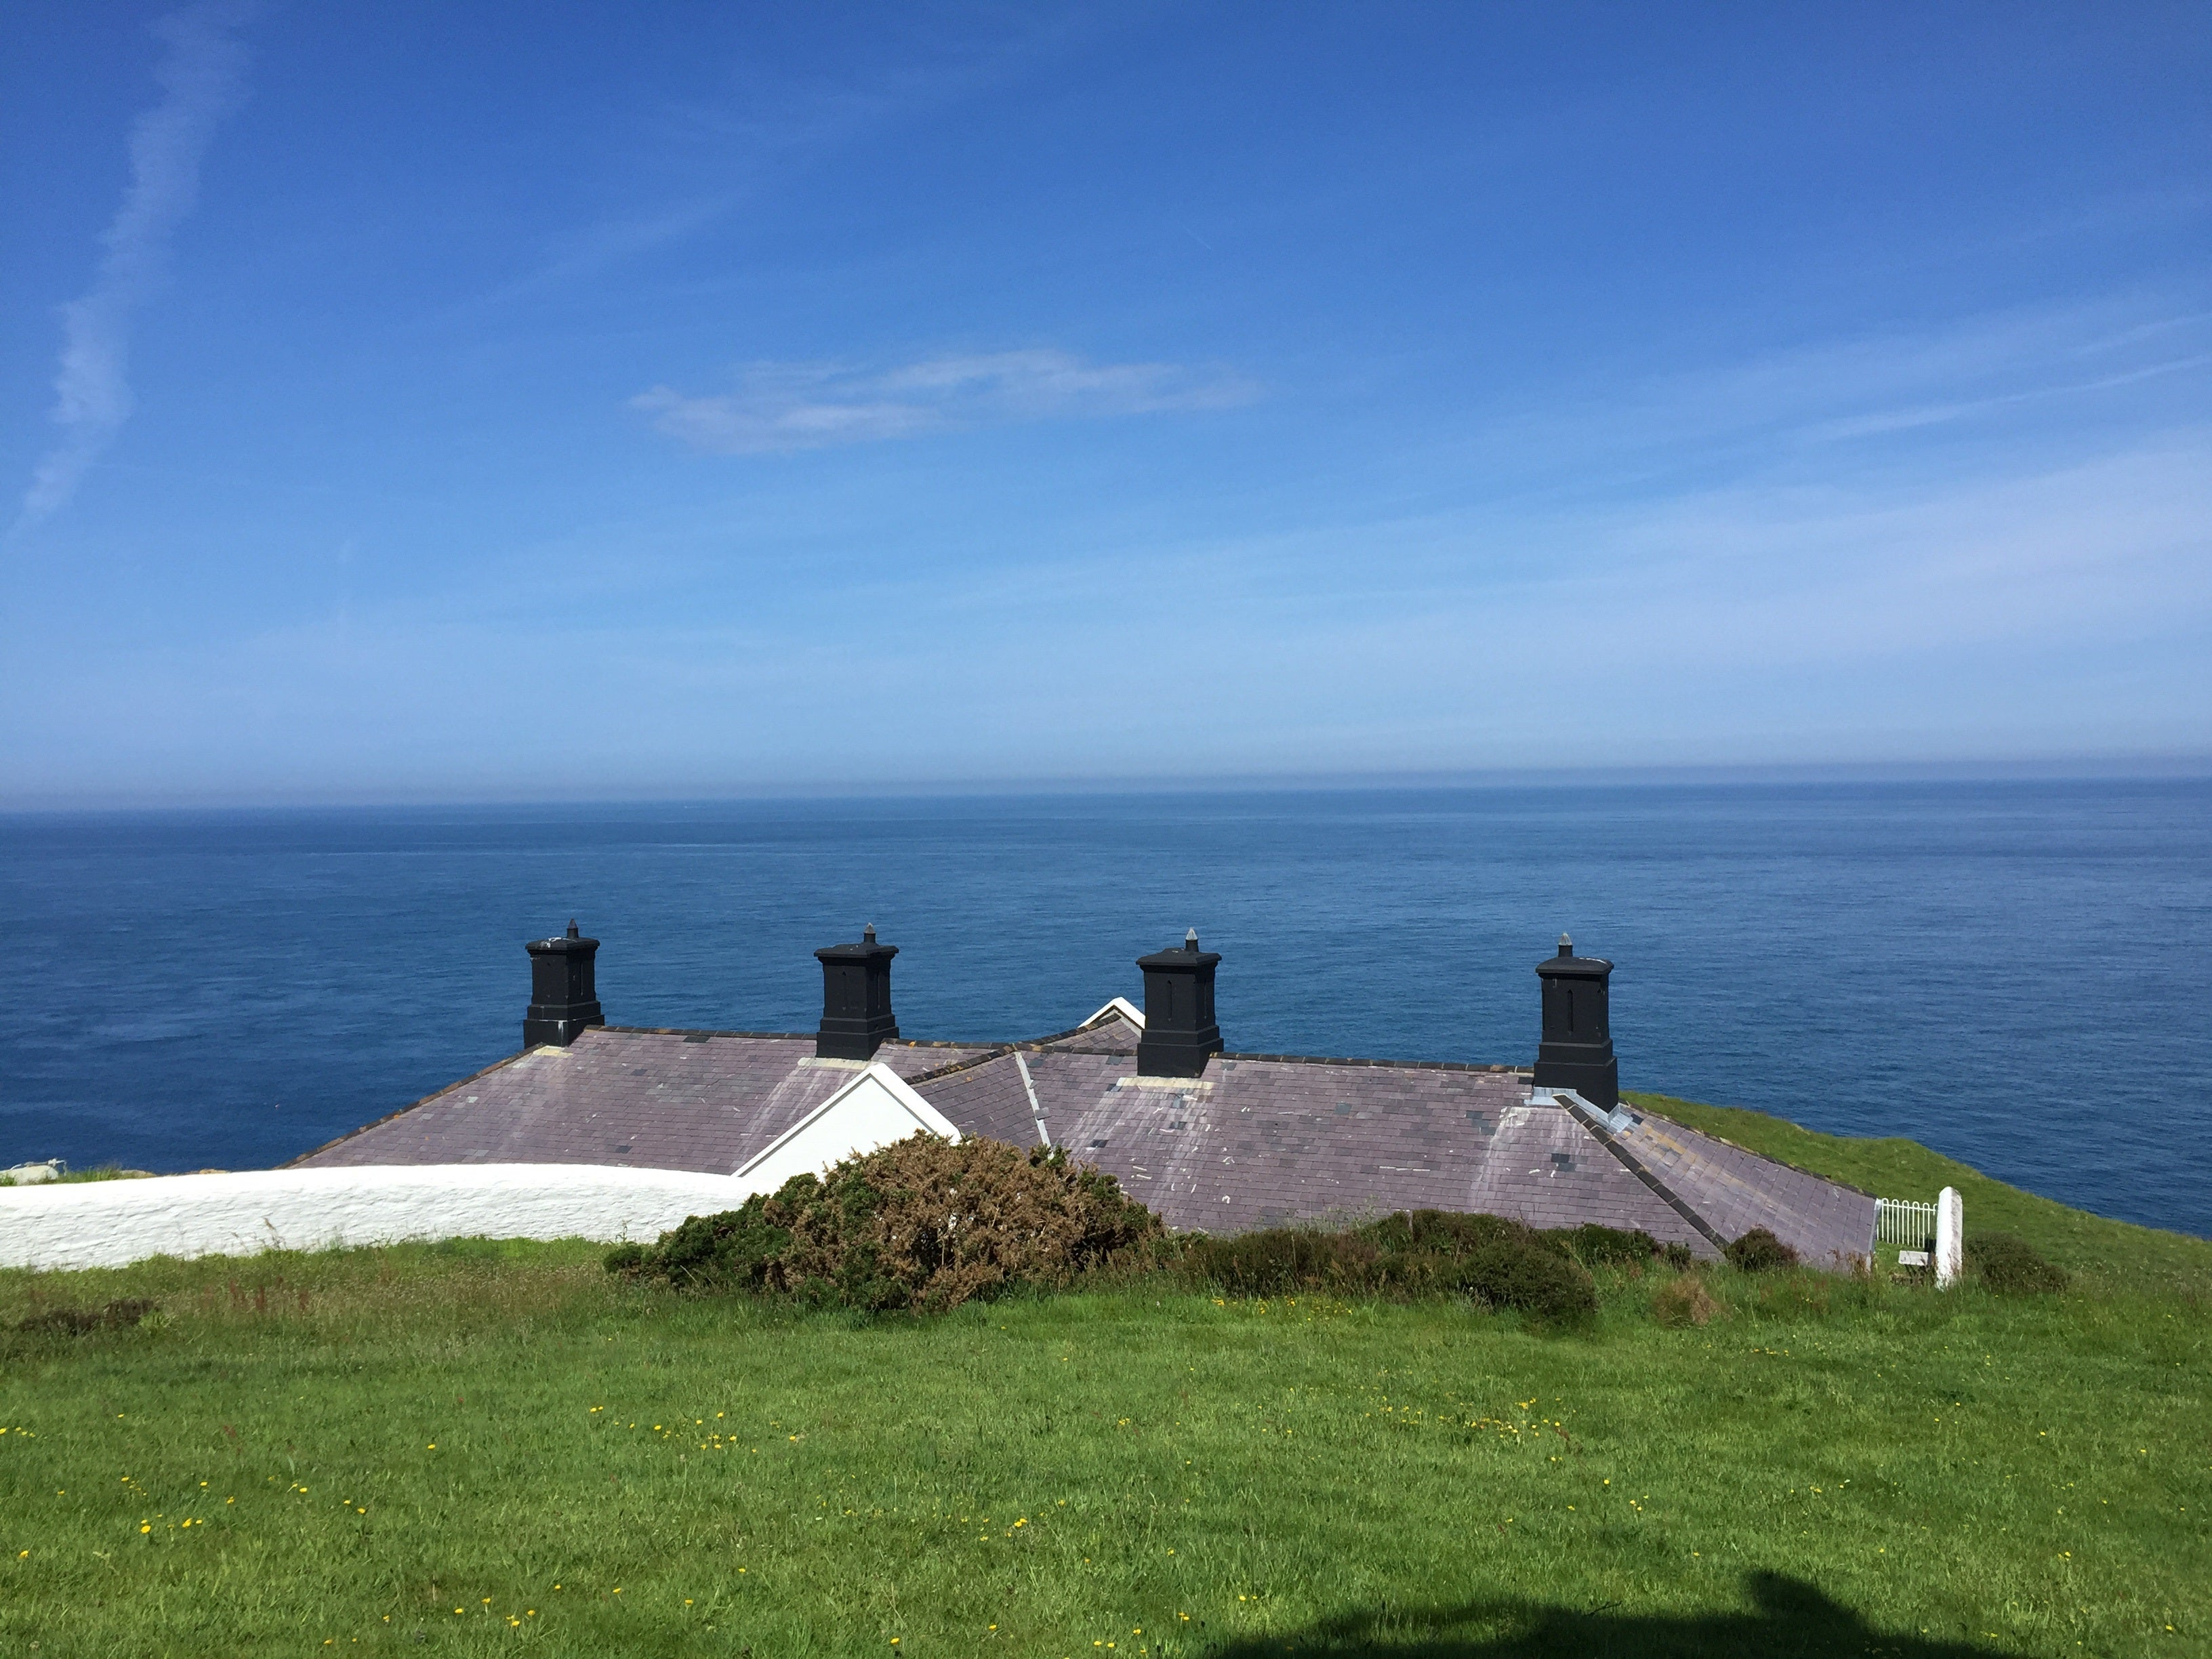 The view from the converted keepers' cottages in Devon